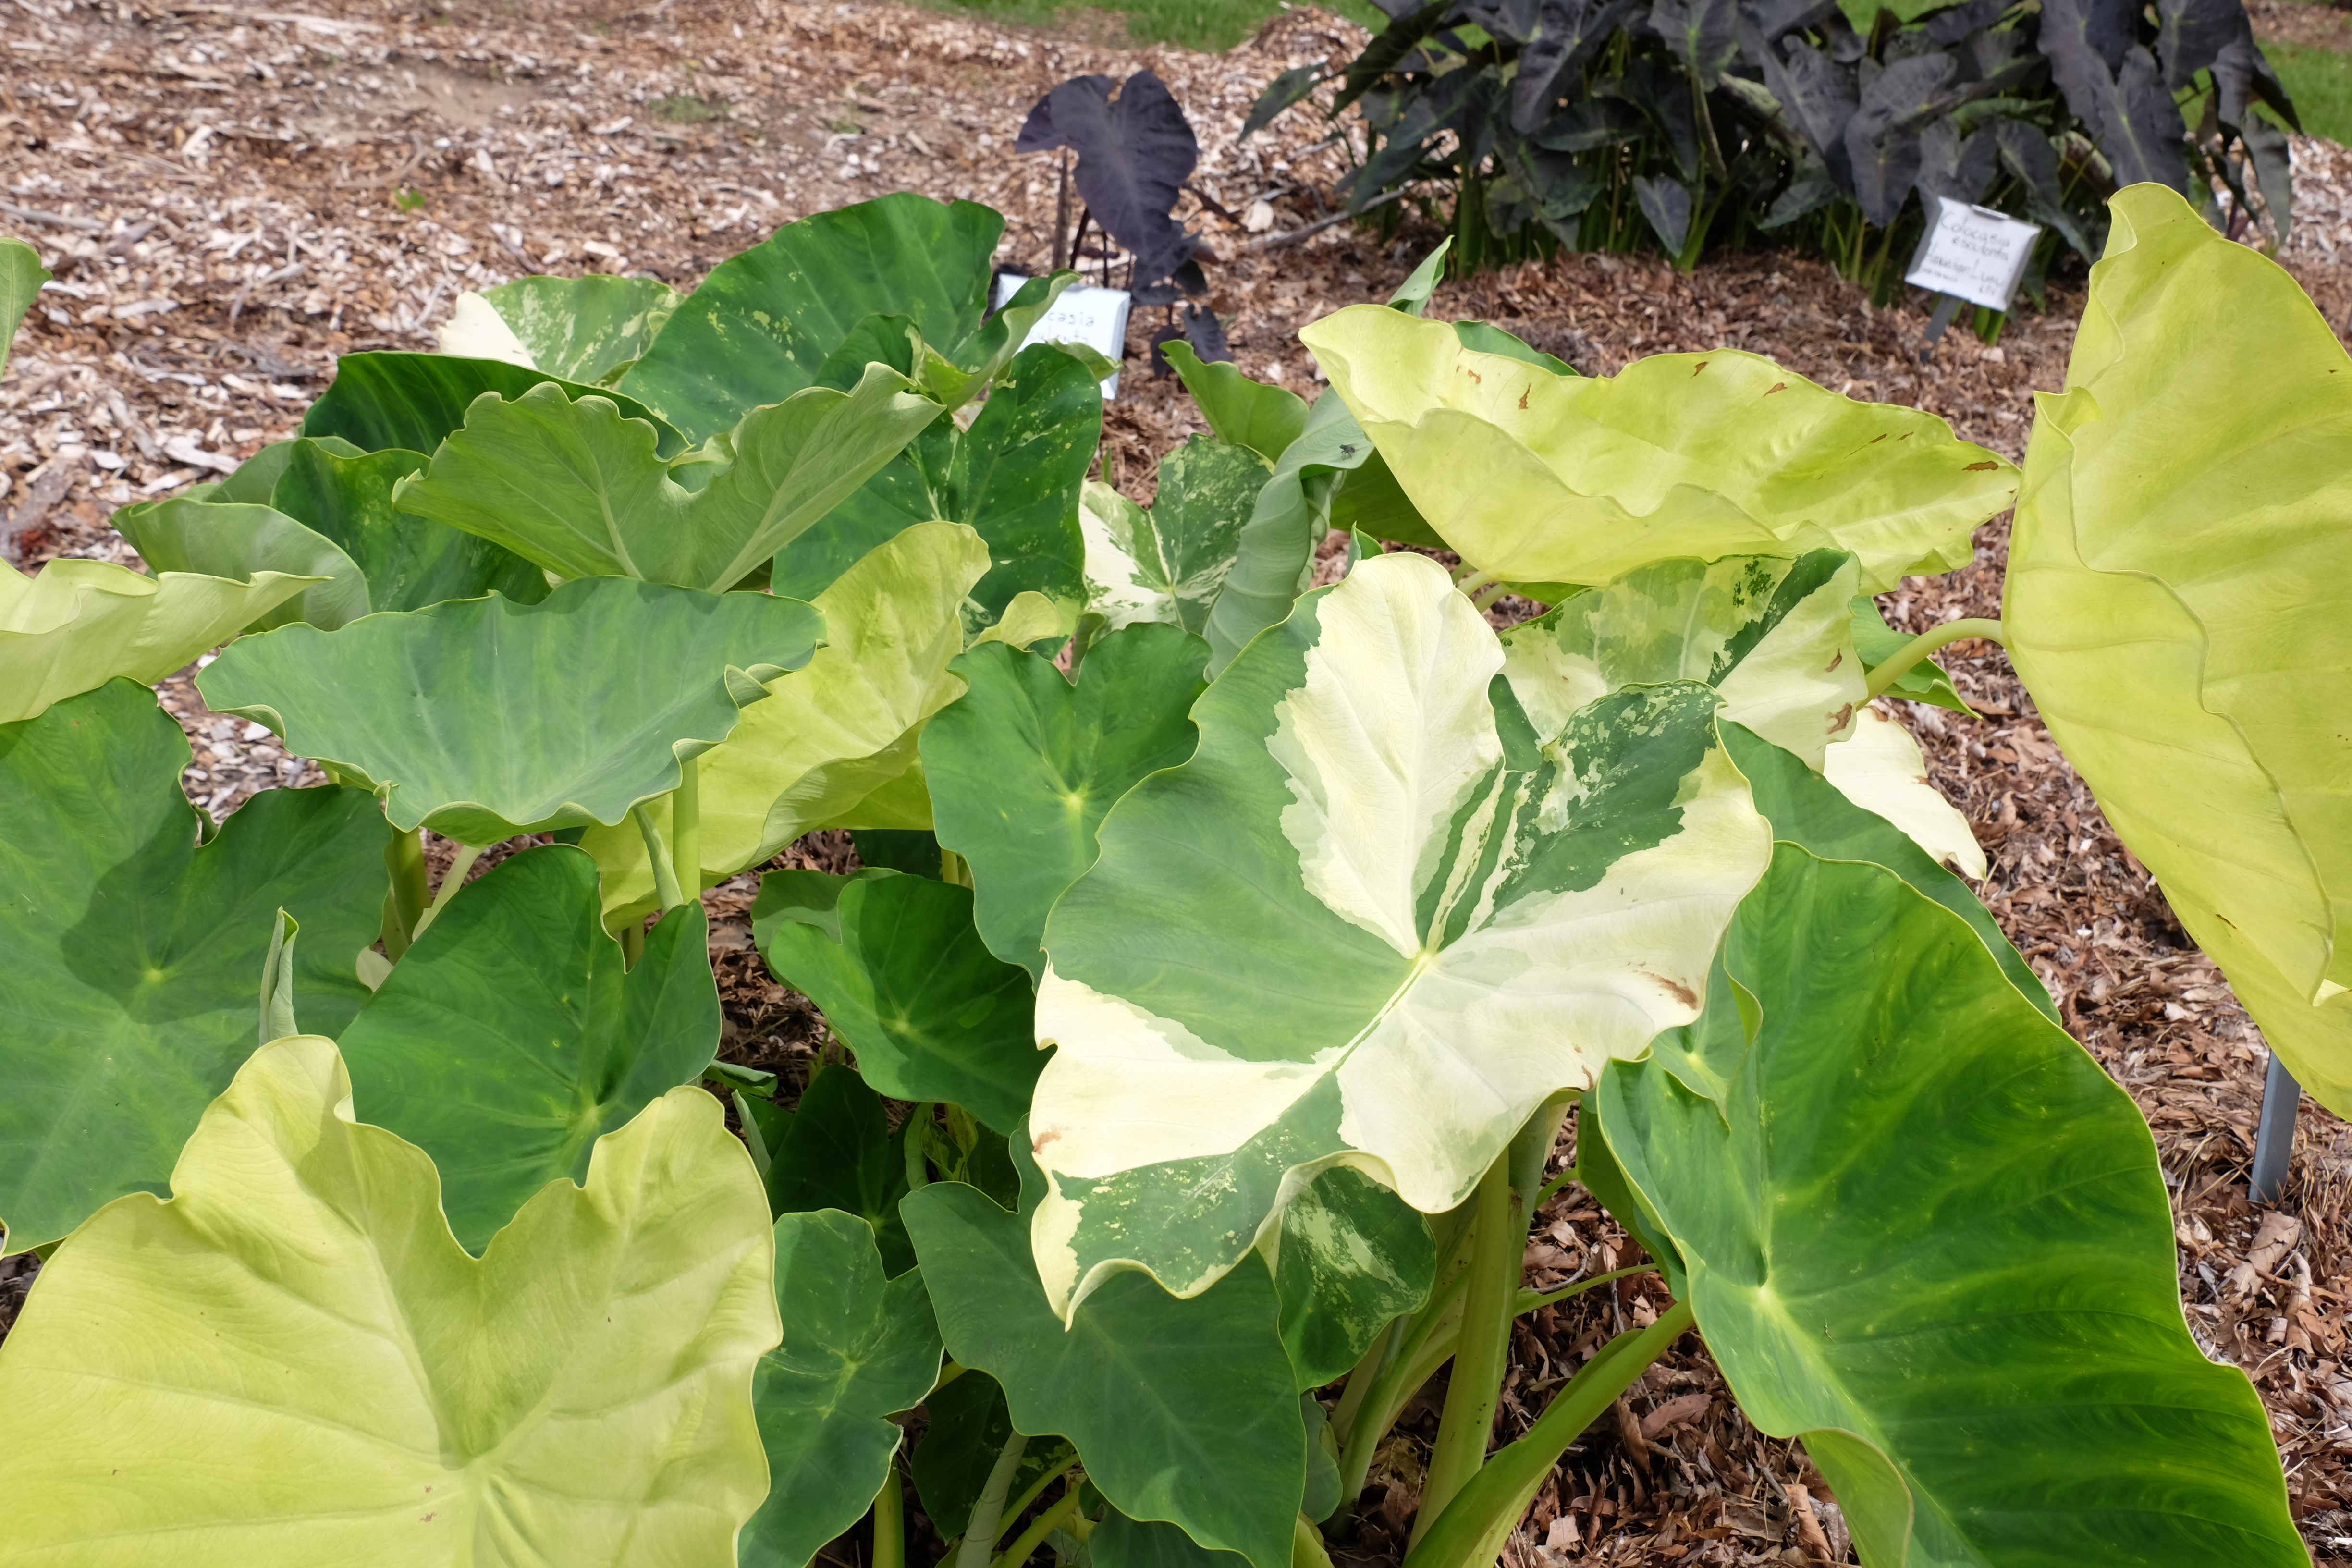 Colocasia esculenta 'Jack's Giant Variegated' @ JLBG - an unintroduced sport of Colocasia 'Jack's Giant' that is highly variegated in spring, but goes all green by mid-summer